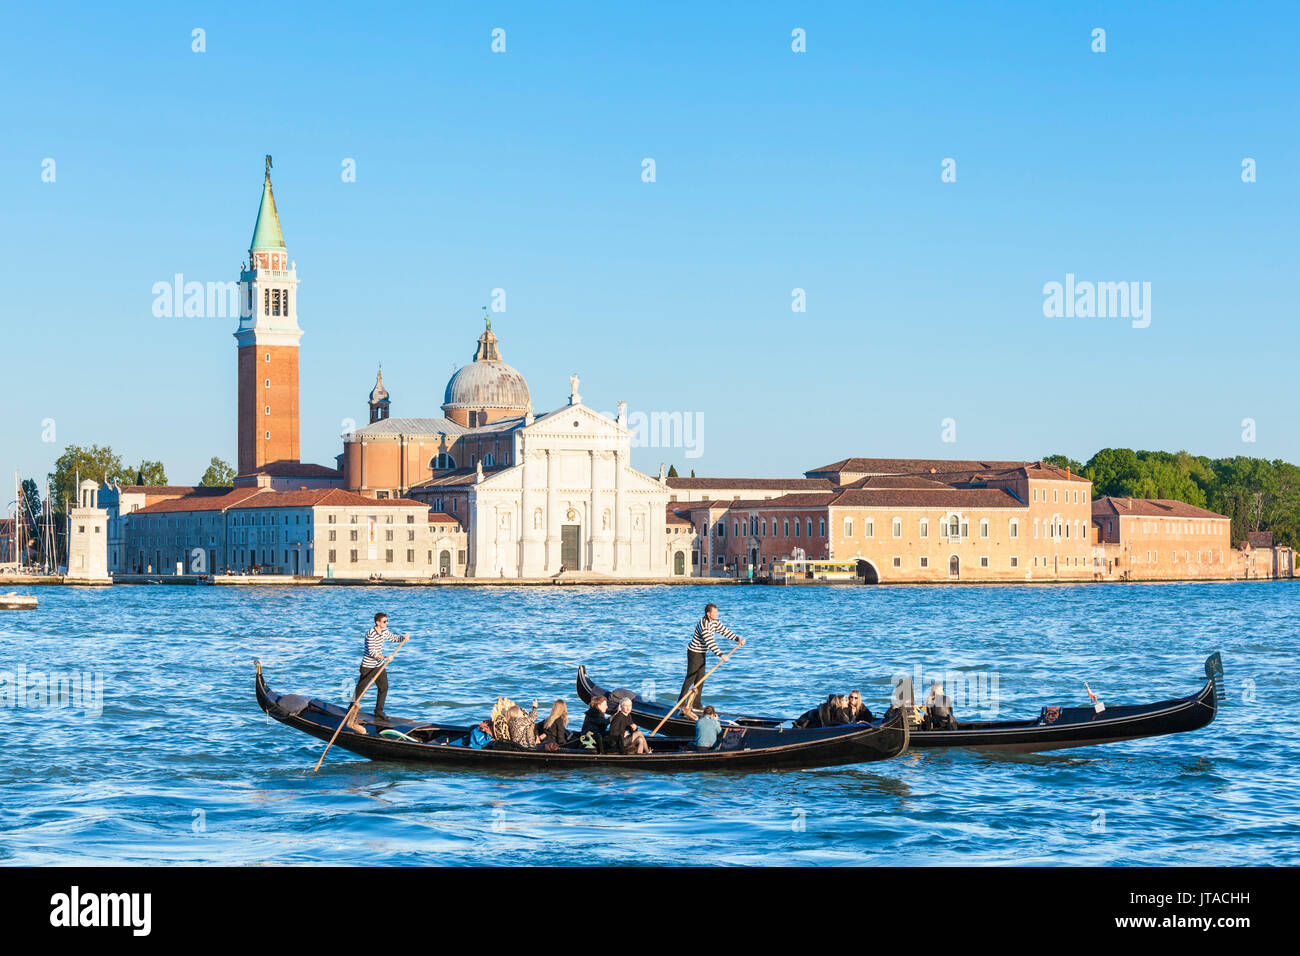 Venetian gondolas with tourists opposite the Island of San Giorgio Maggiore, Canale di San Marco, Venice, UNESCO, Veneto, Italy - Stock Image